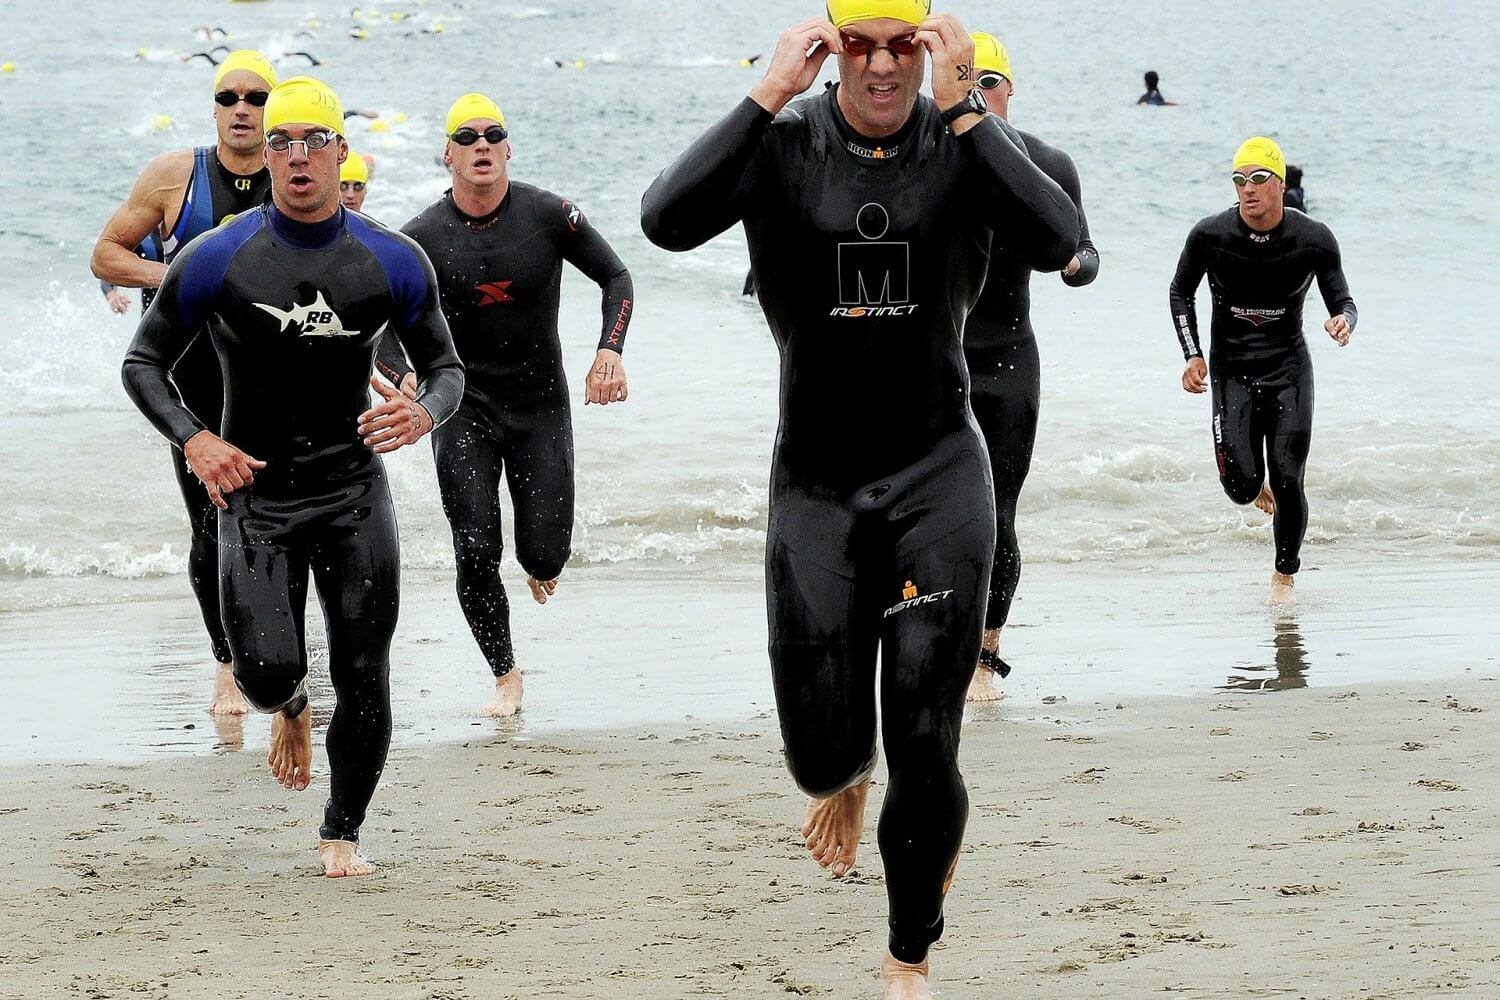 men running out of the sea in a triathlon race